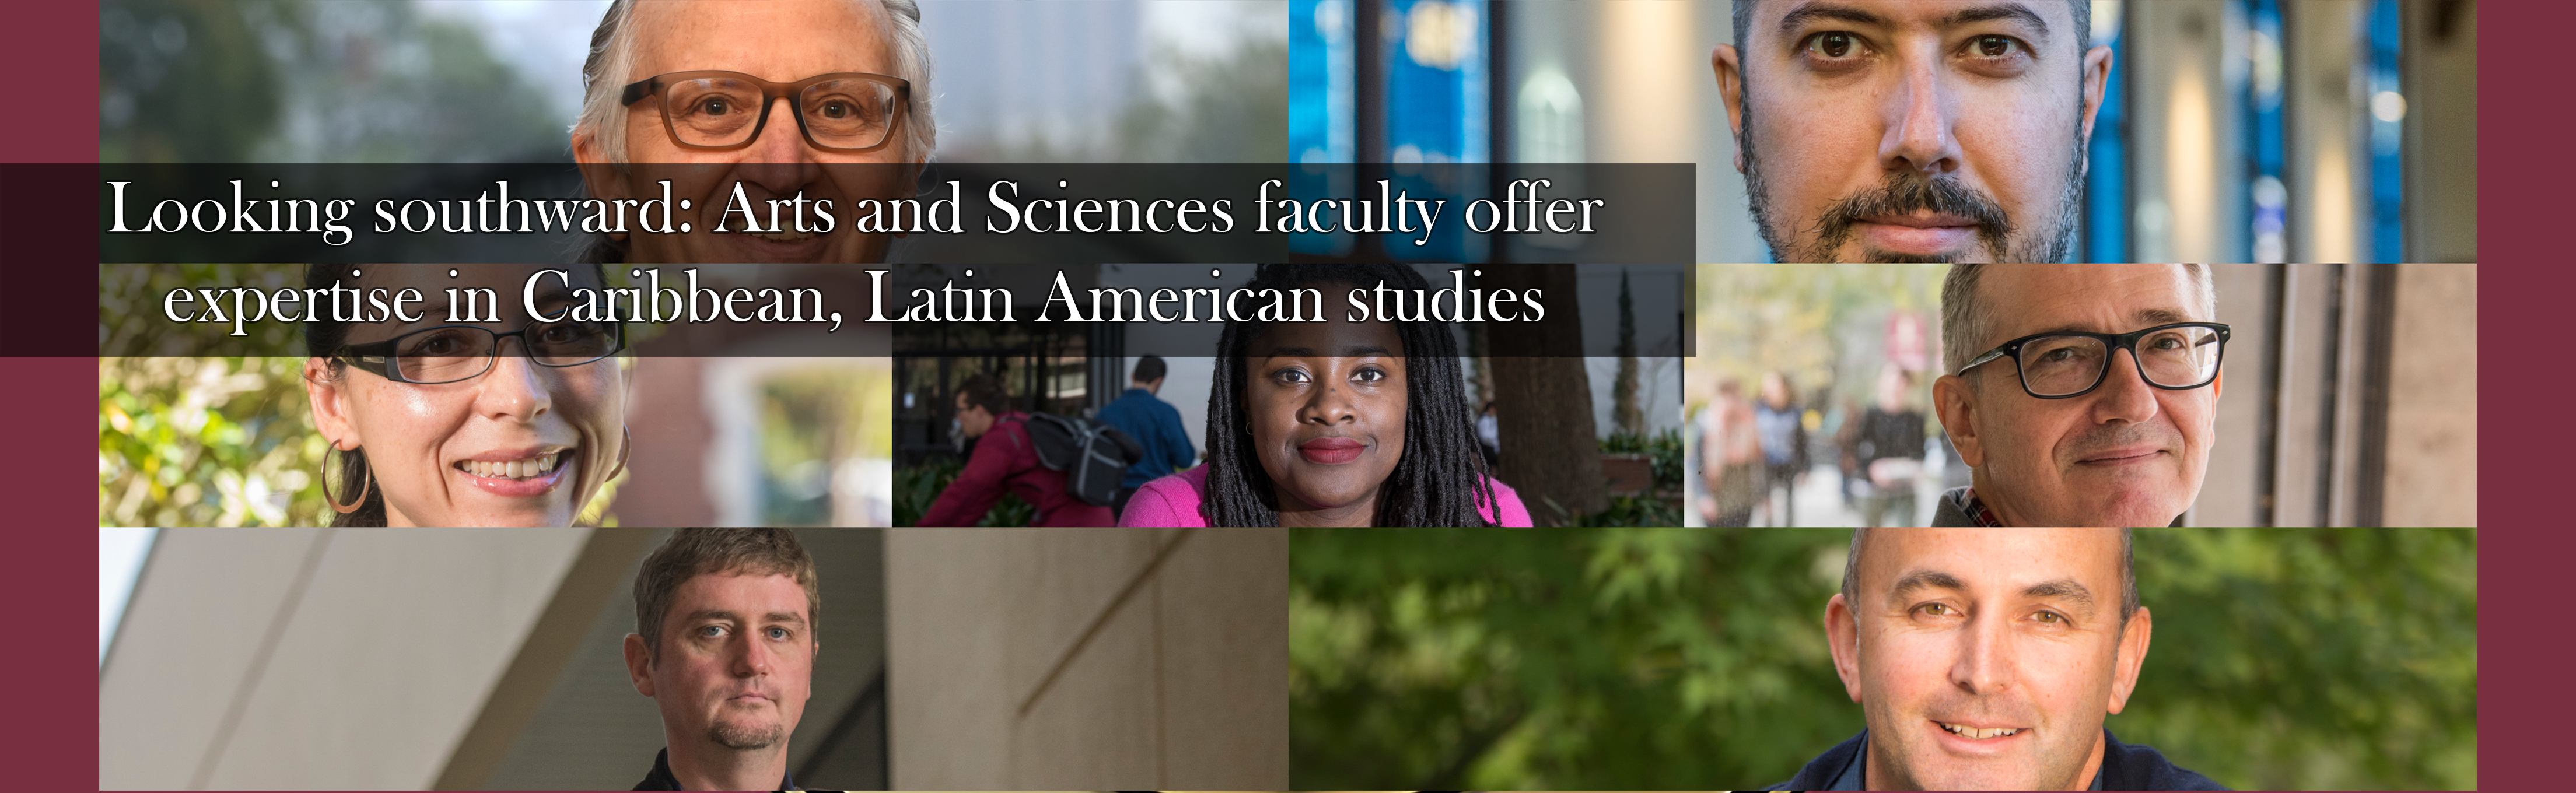 Looking southward: Arts and Sciences faculty offer expertise in Caribbean, Latin American studies